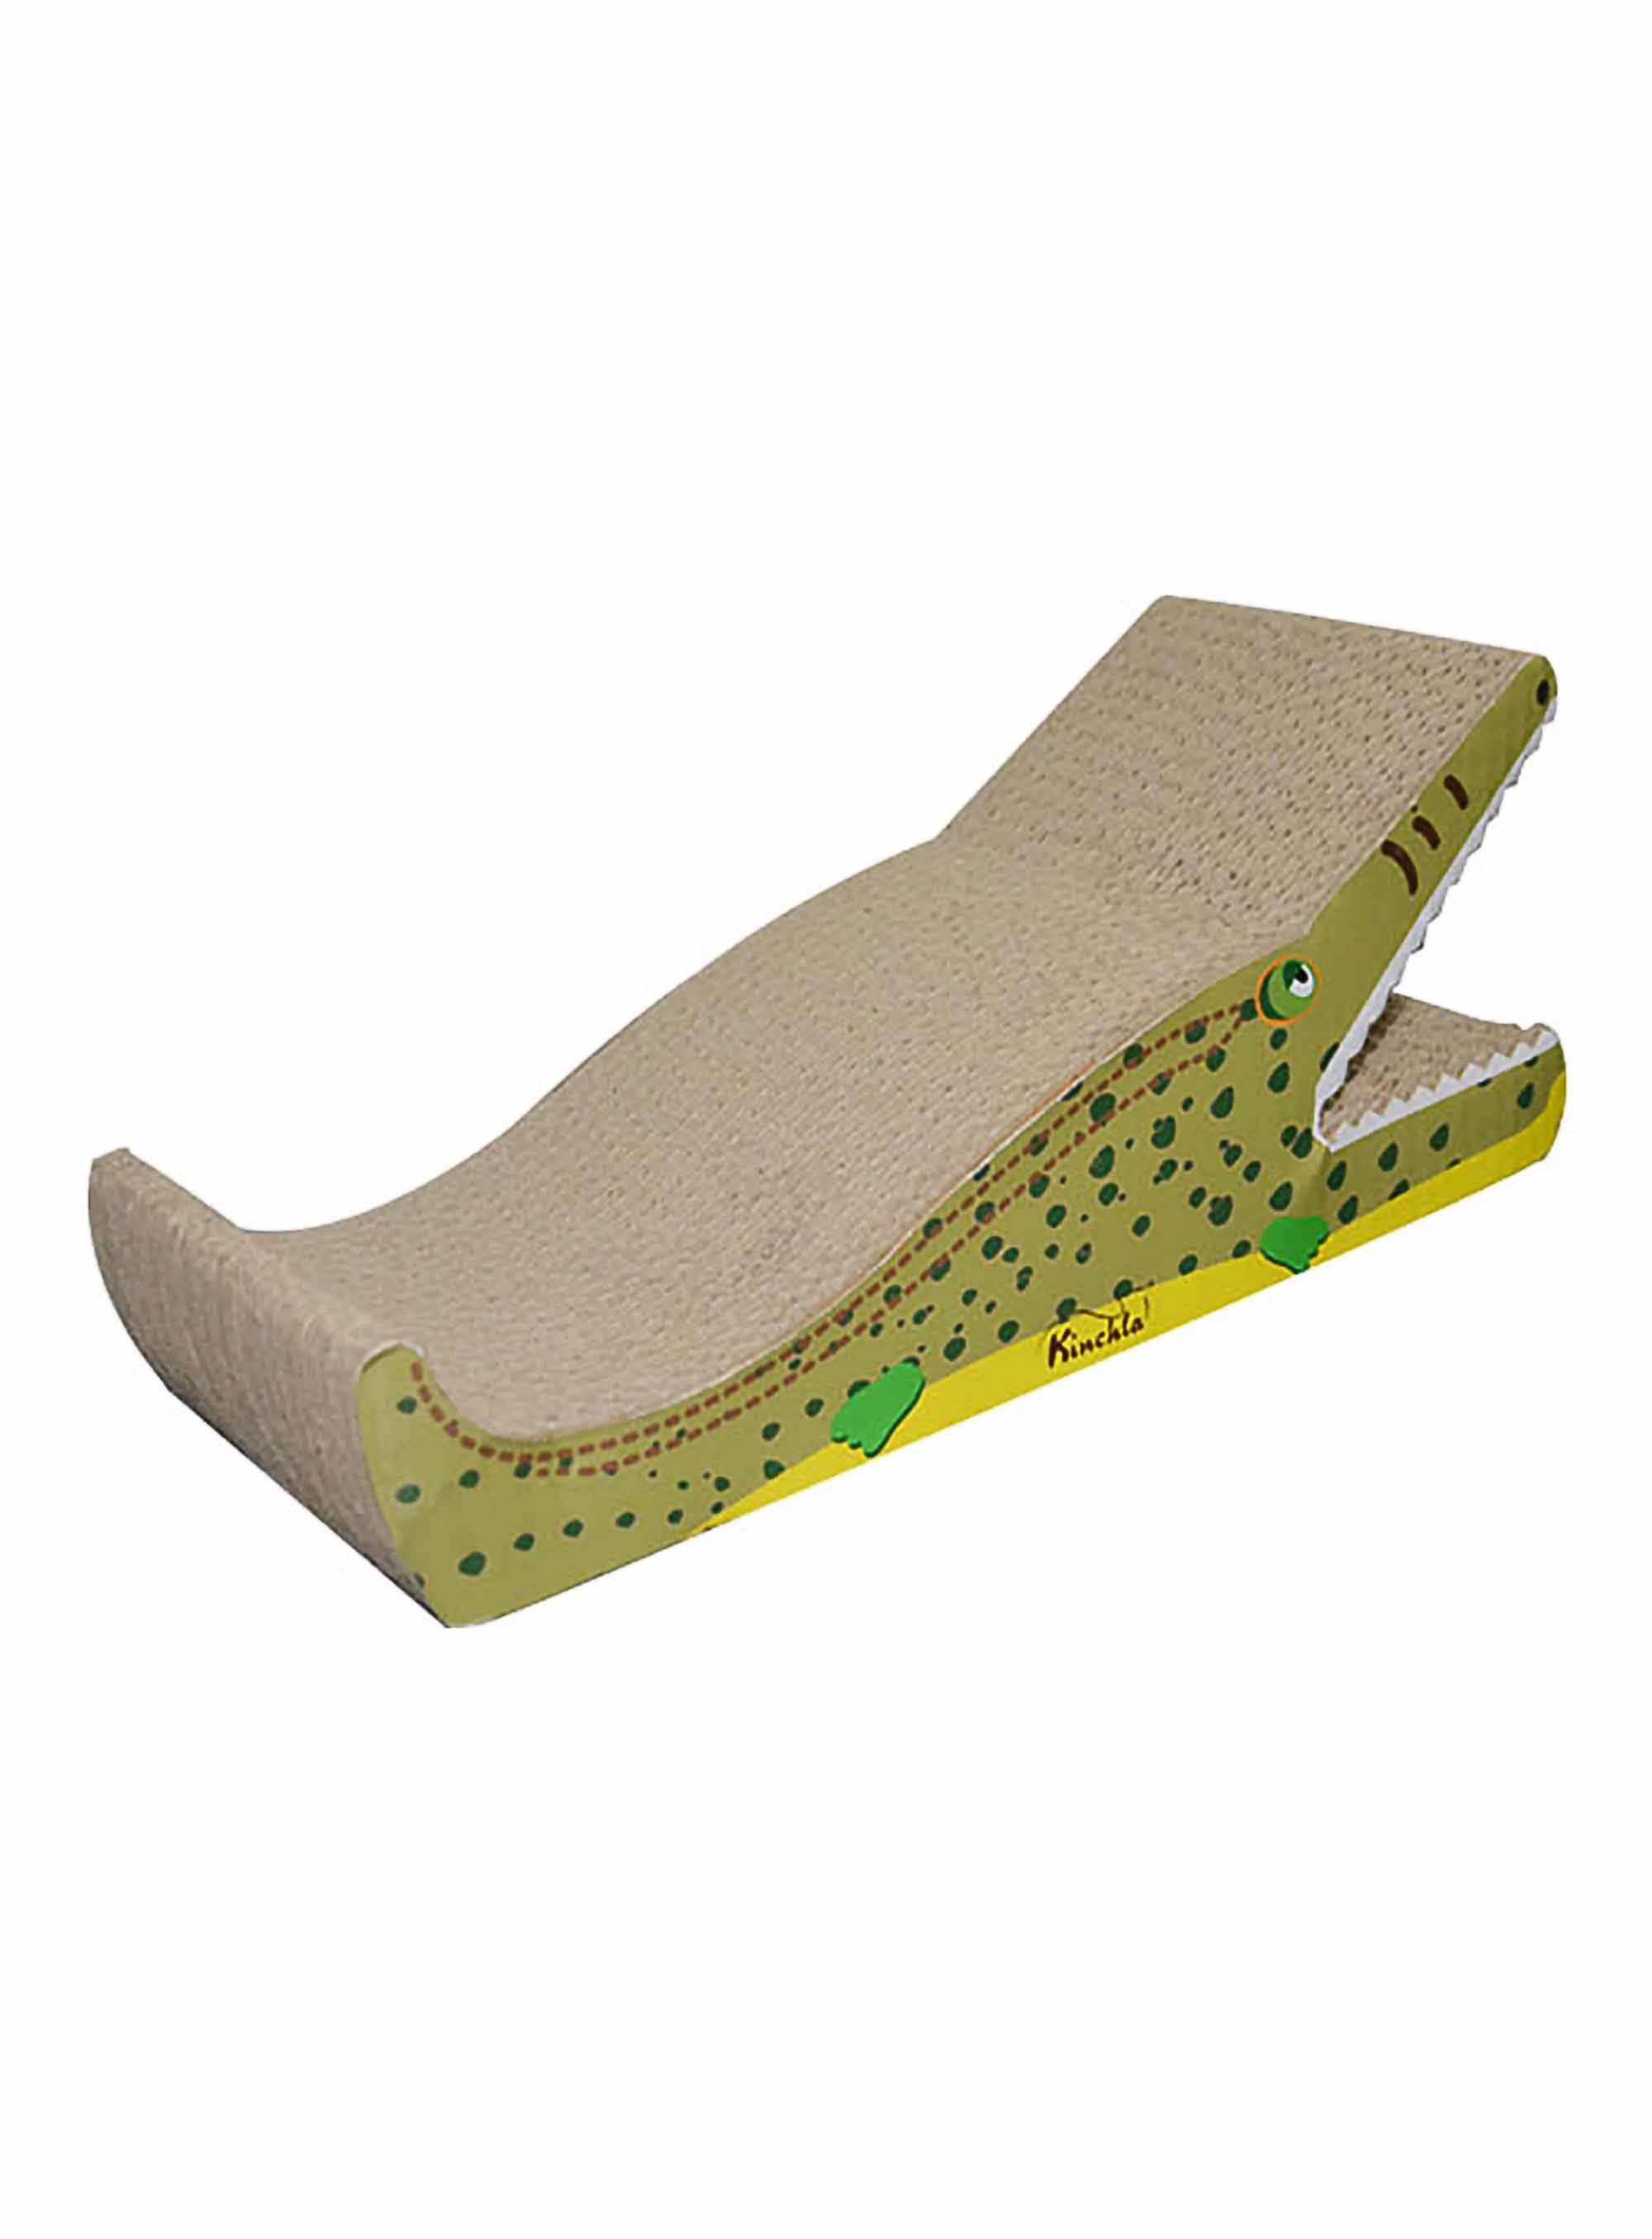 OEM/ODM Supplier Cardboard Cat Scratcher House -